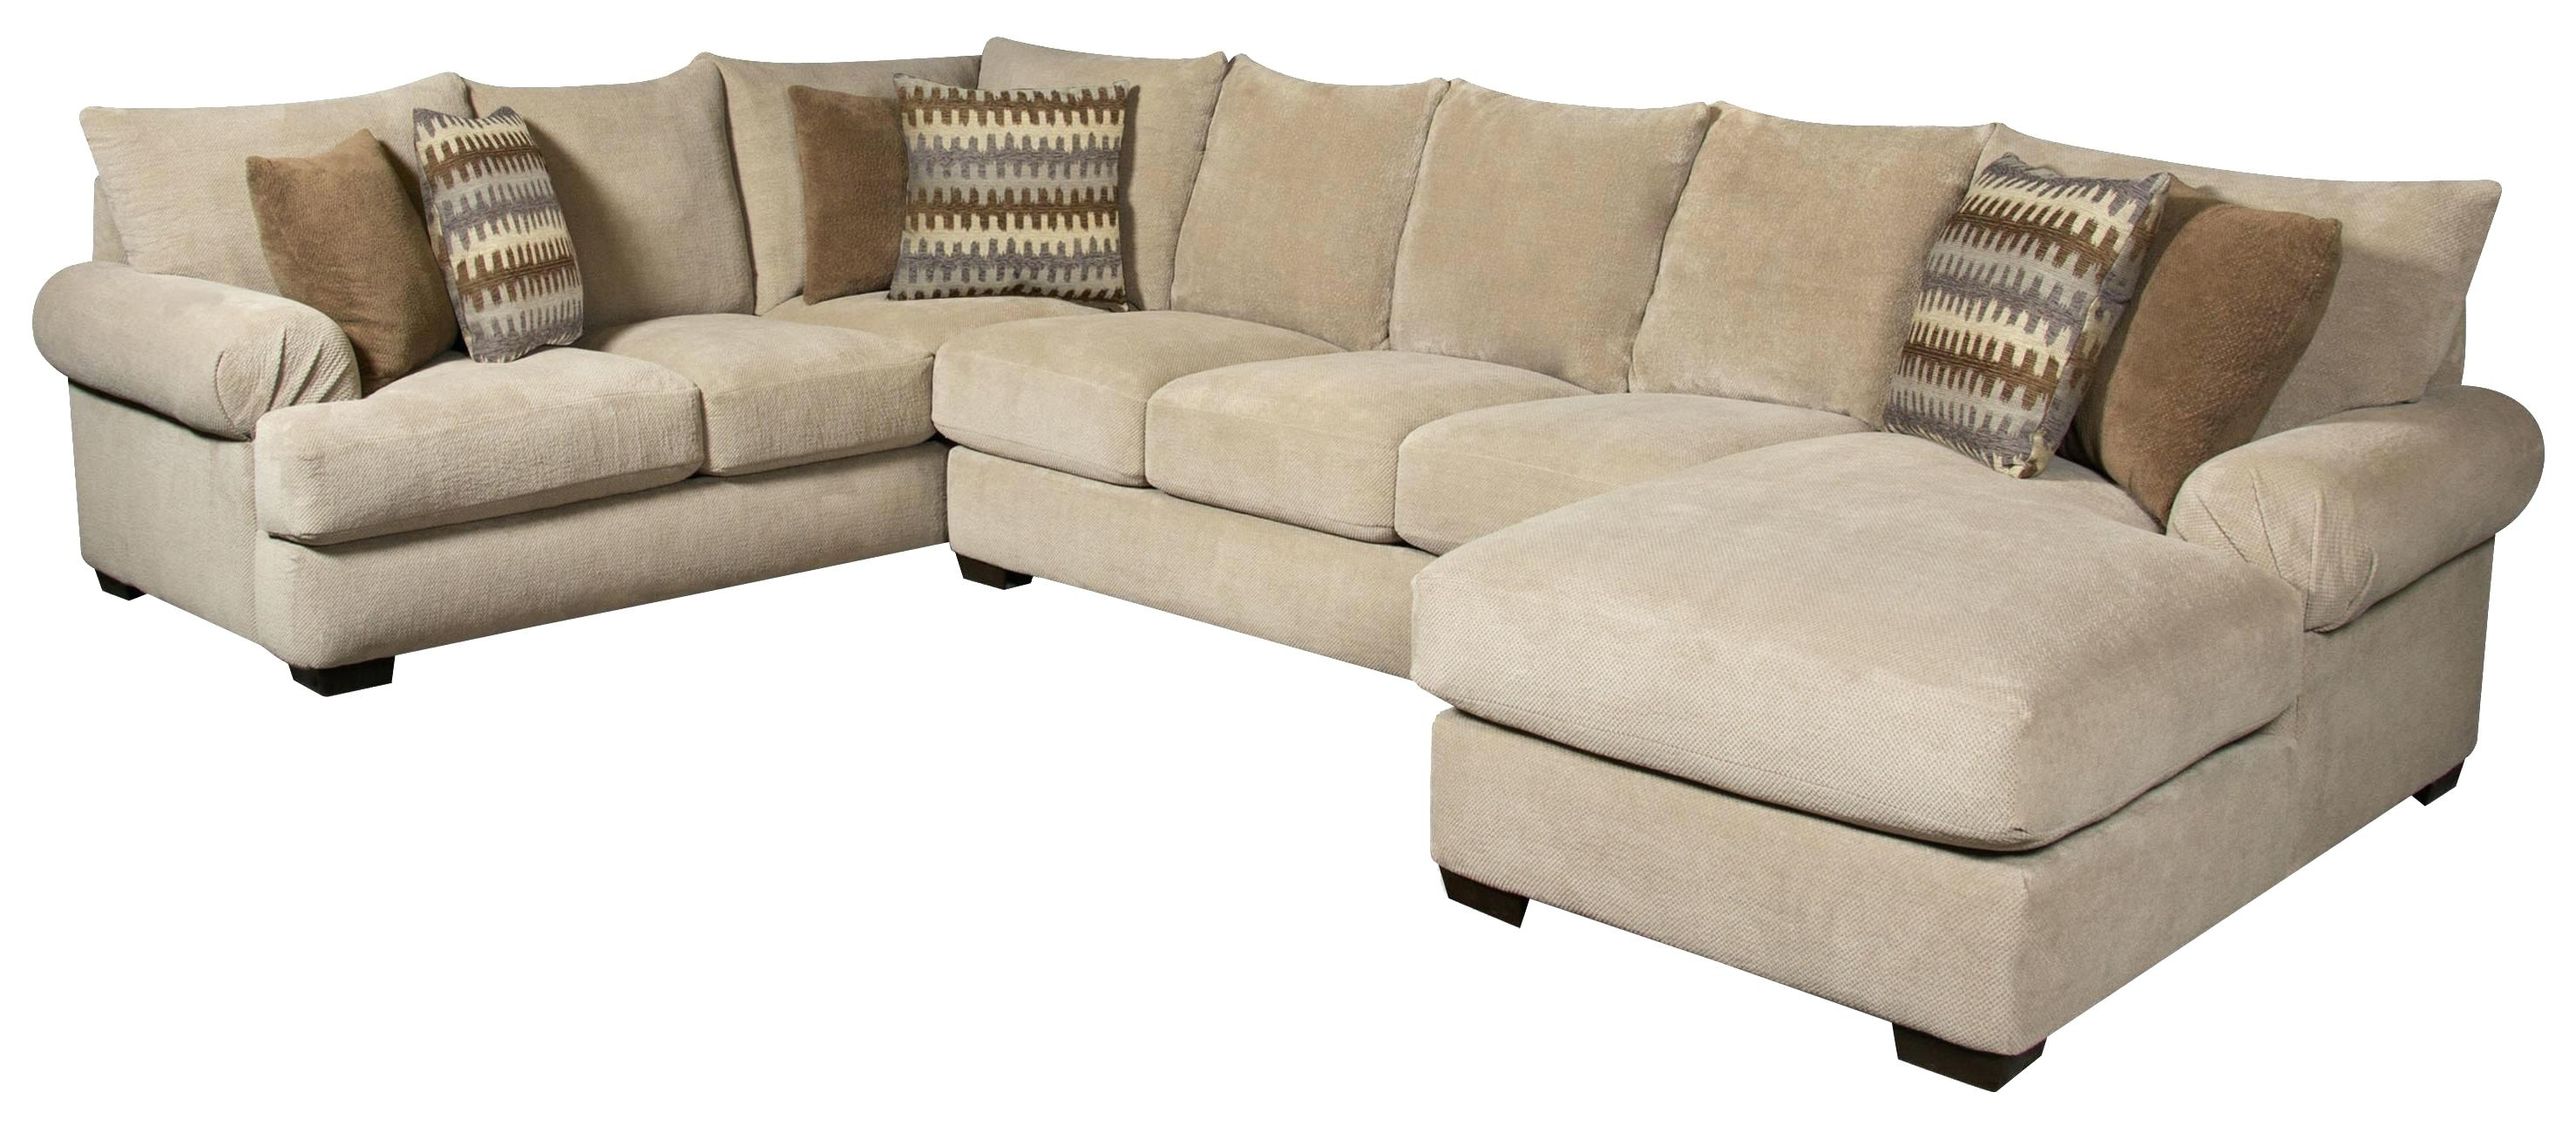 Sectional Sofas Made In North Carolina Sofa Review